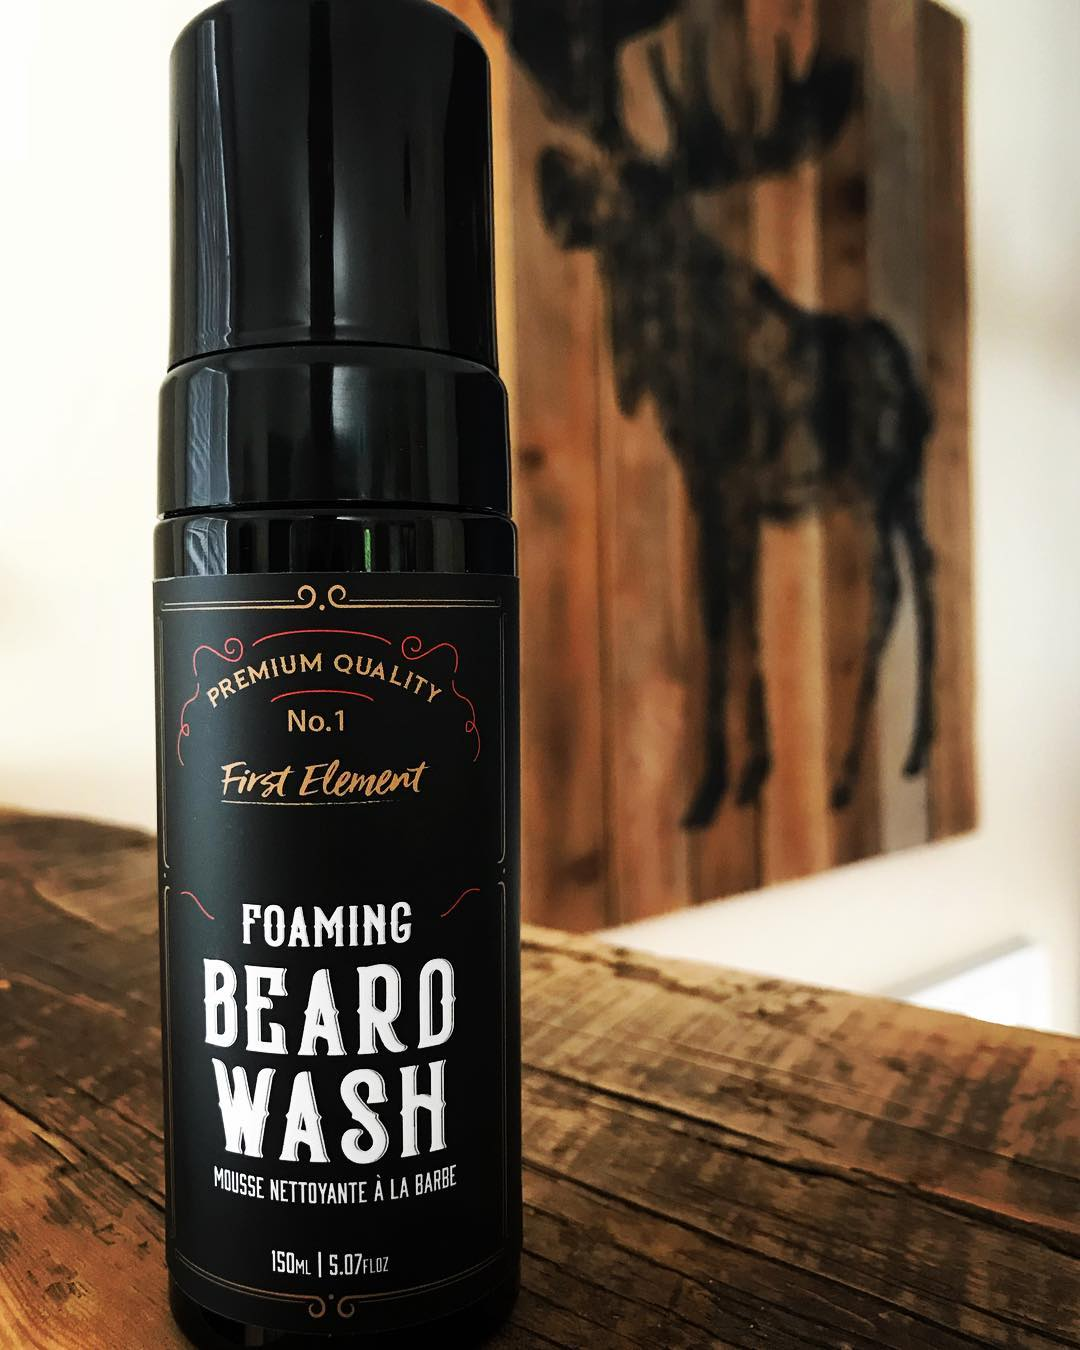 Private Label Foaming Beard Wash!